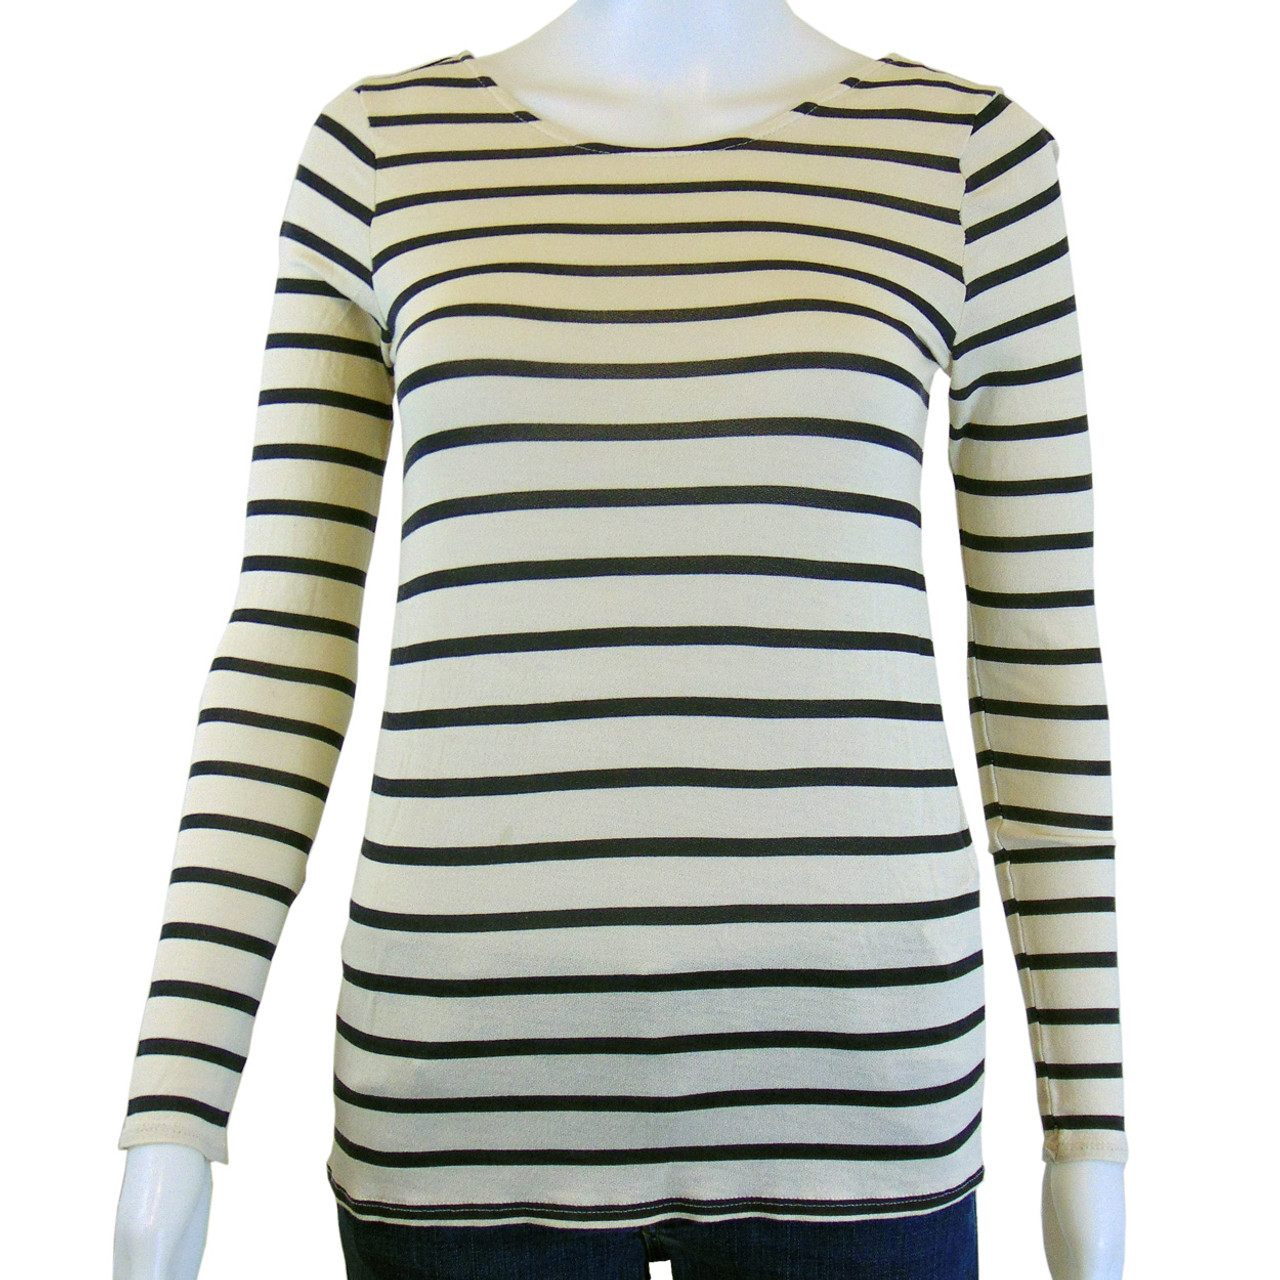 b9507778 Zara T-shirt Collection Black and Beige Striped Tee